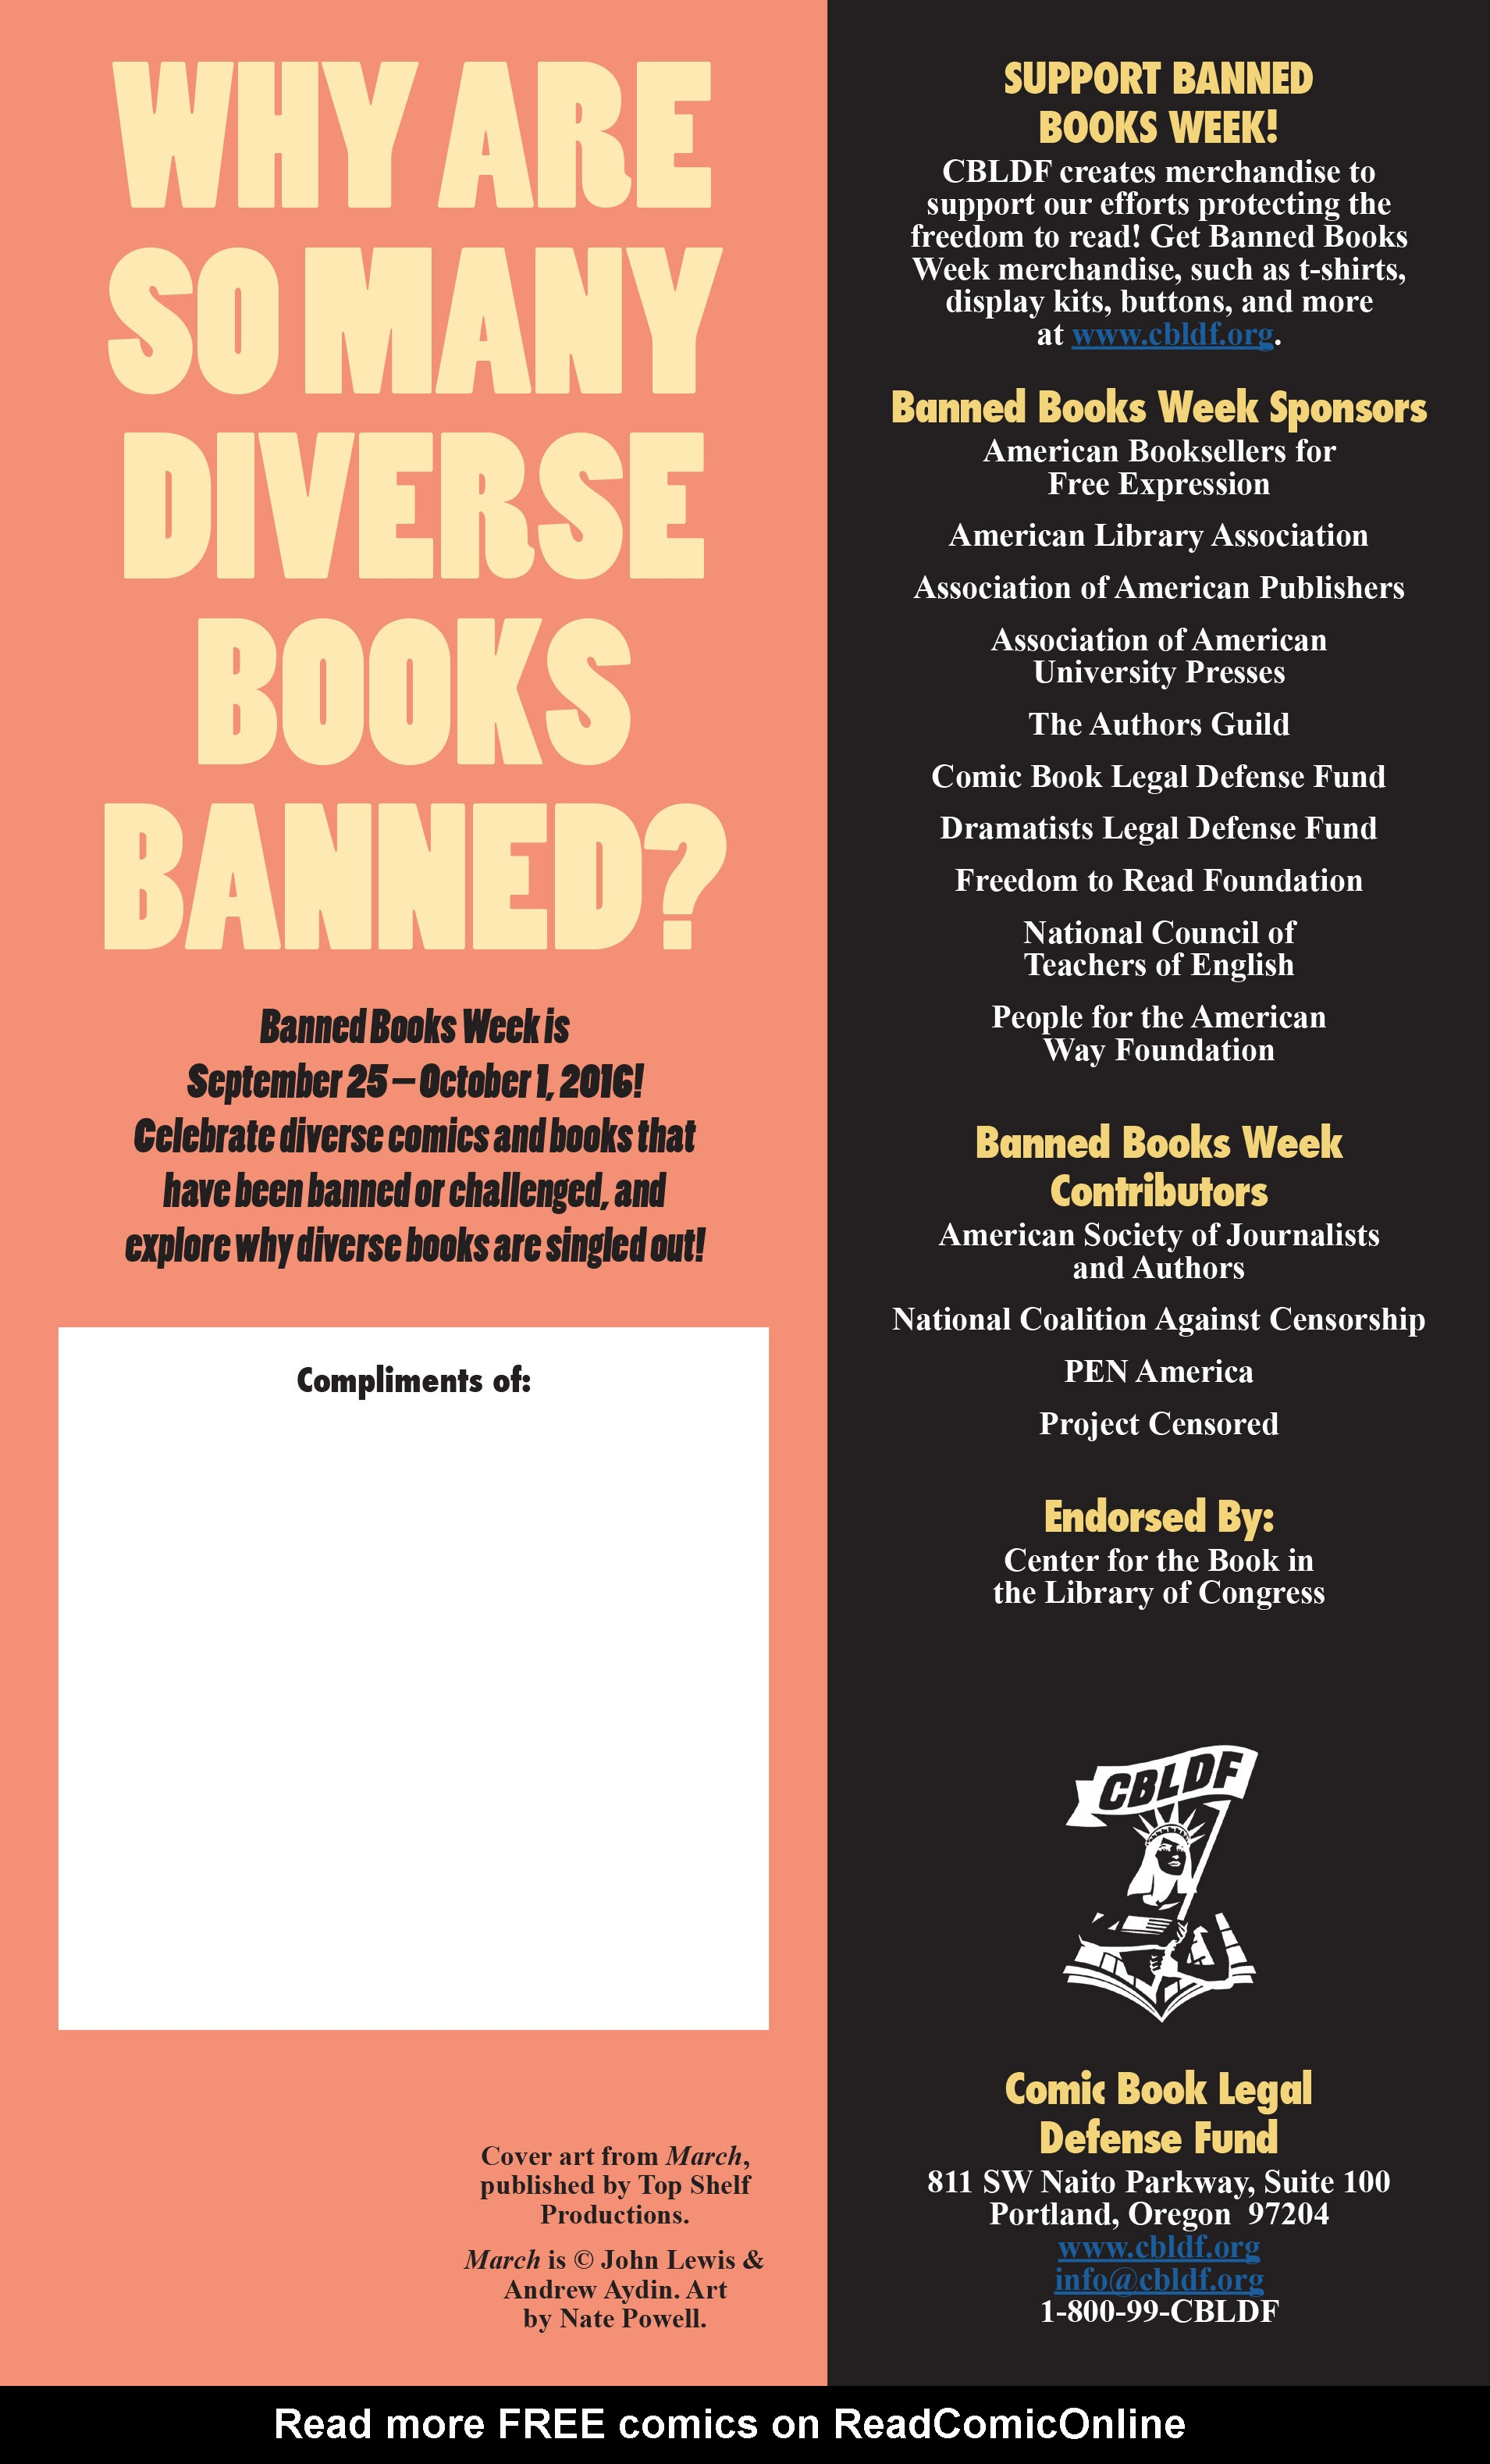 Read online CBLDF Banned Books Week Handbook 2016 comic -  Issue # Full - 15